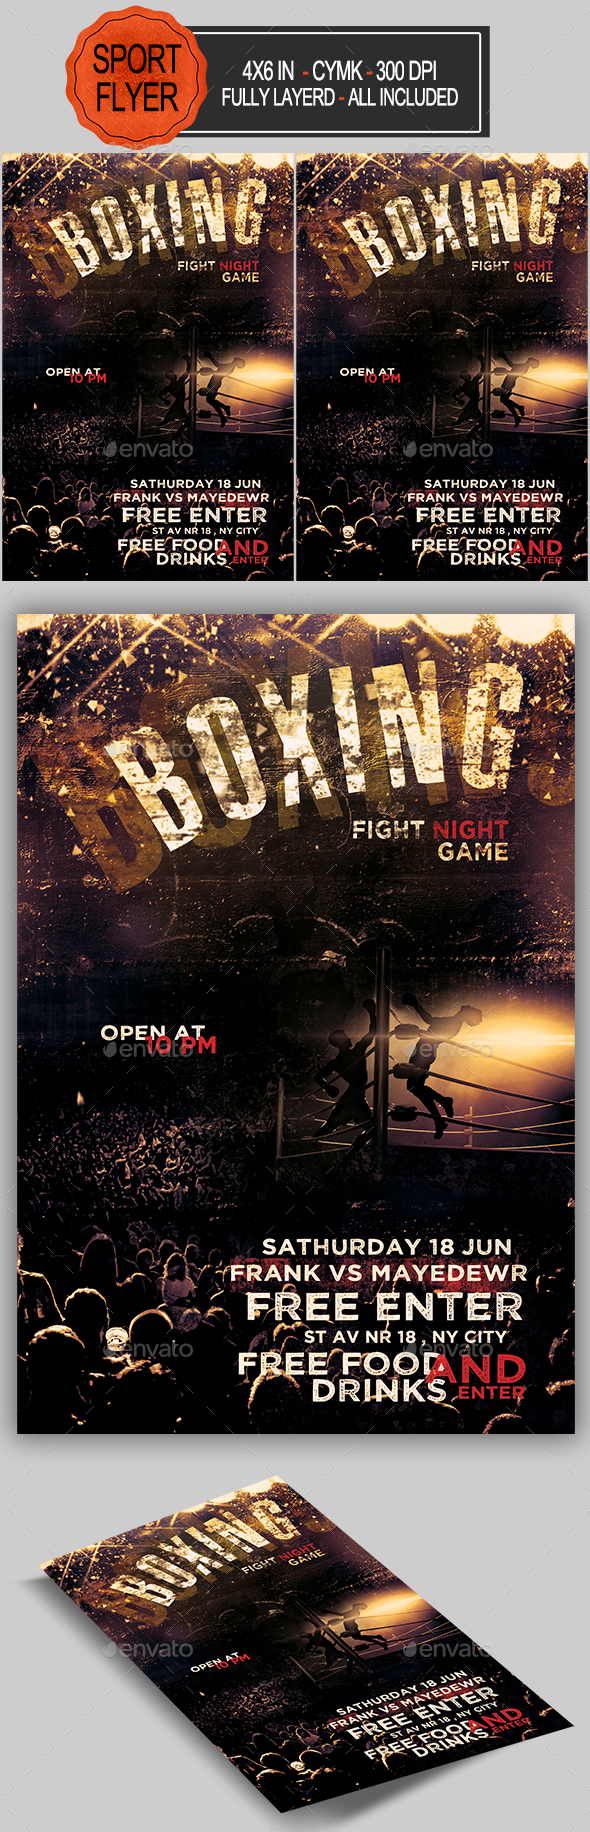 Boxing Poster Graphics, Designs & Templates from GraphicRiver